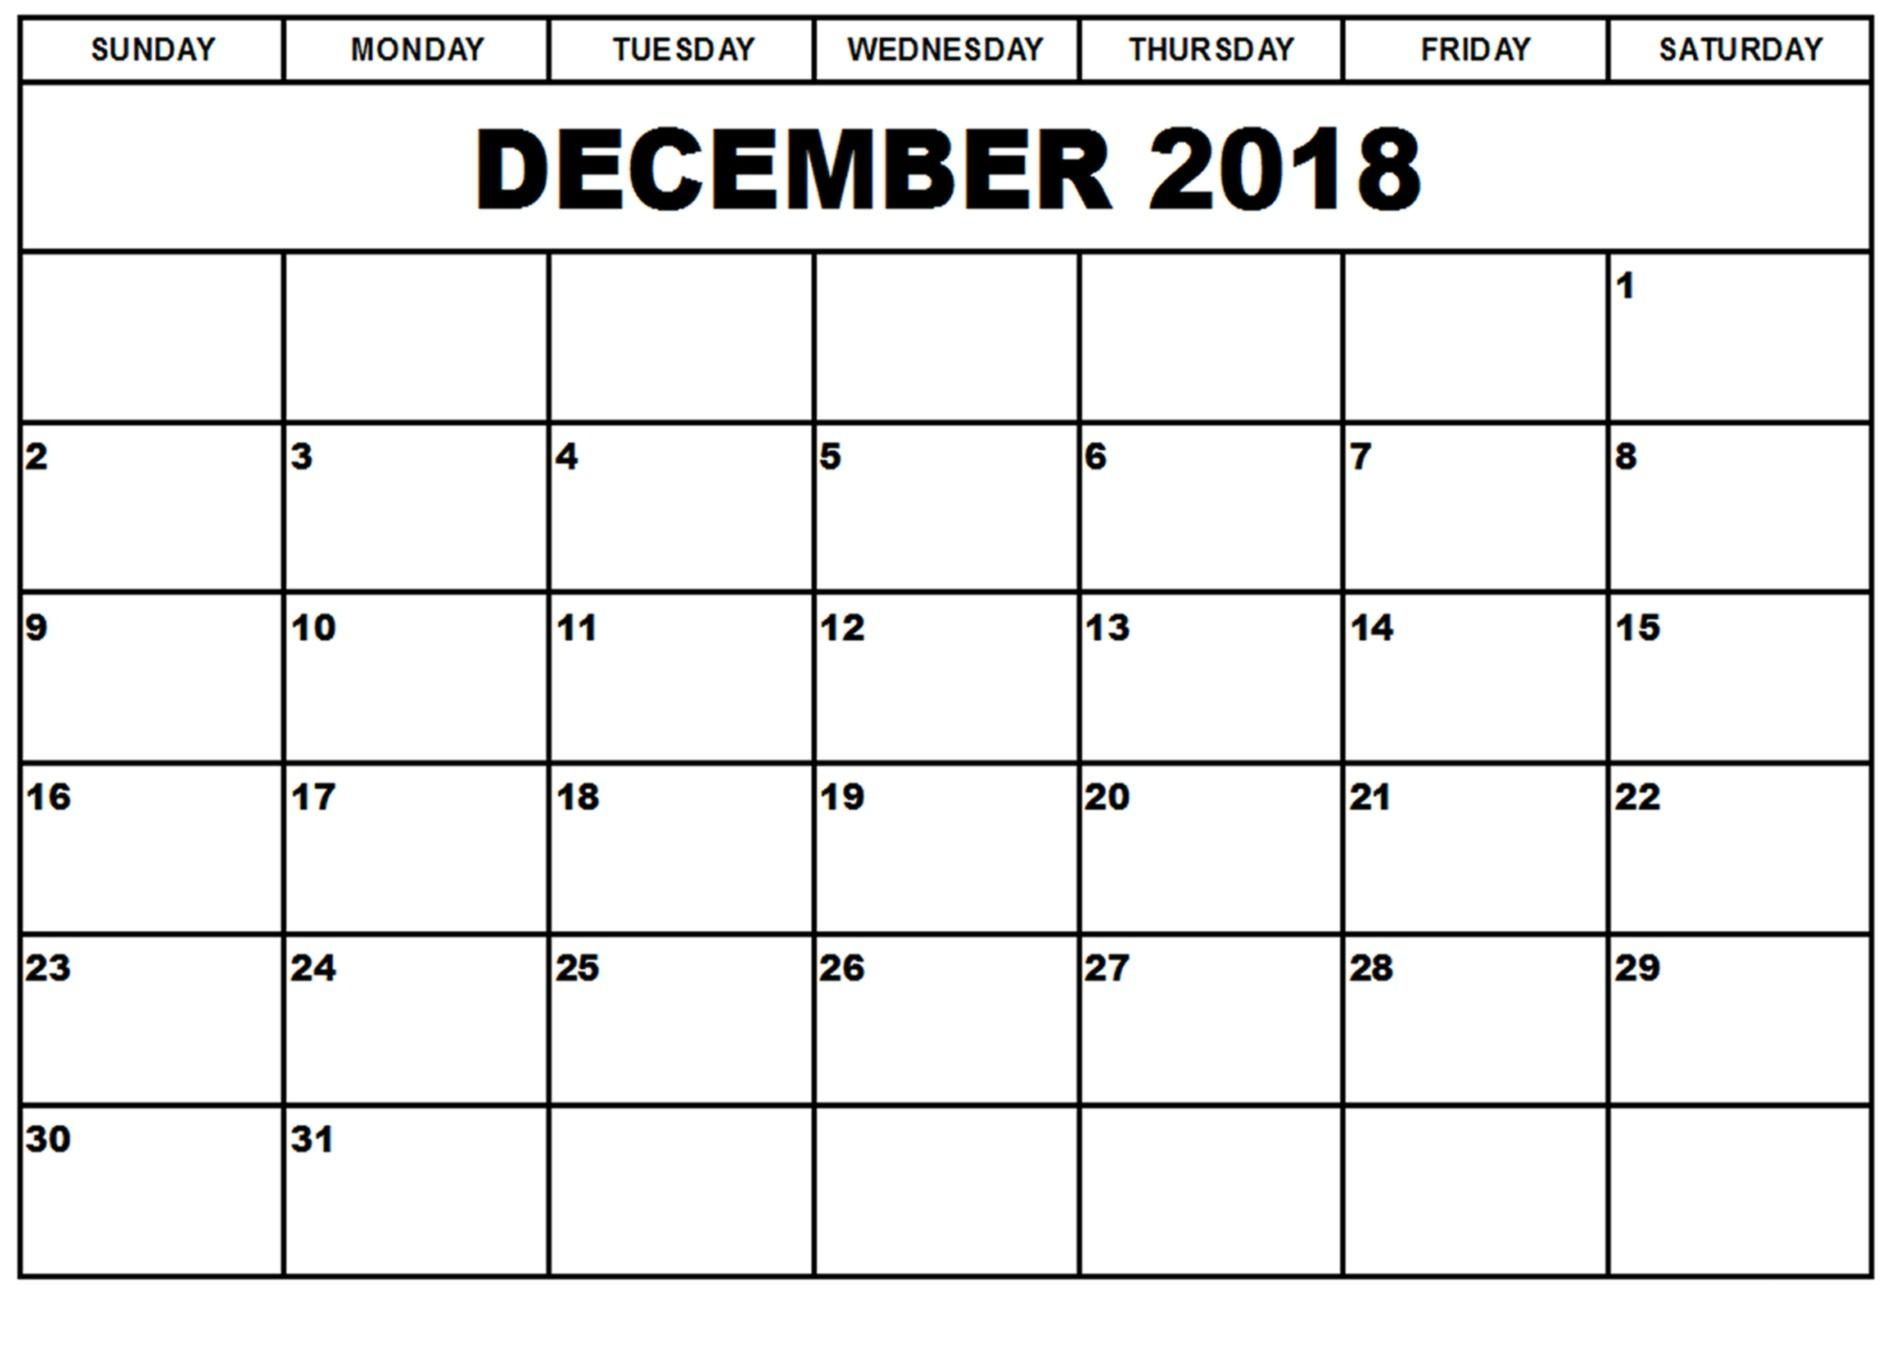 dec 2018 calendar table planner